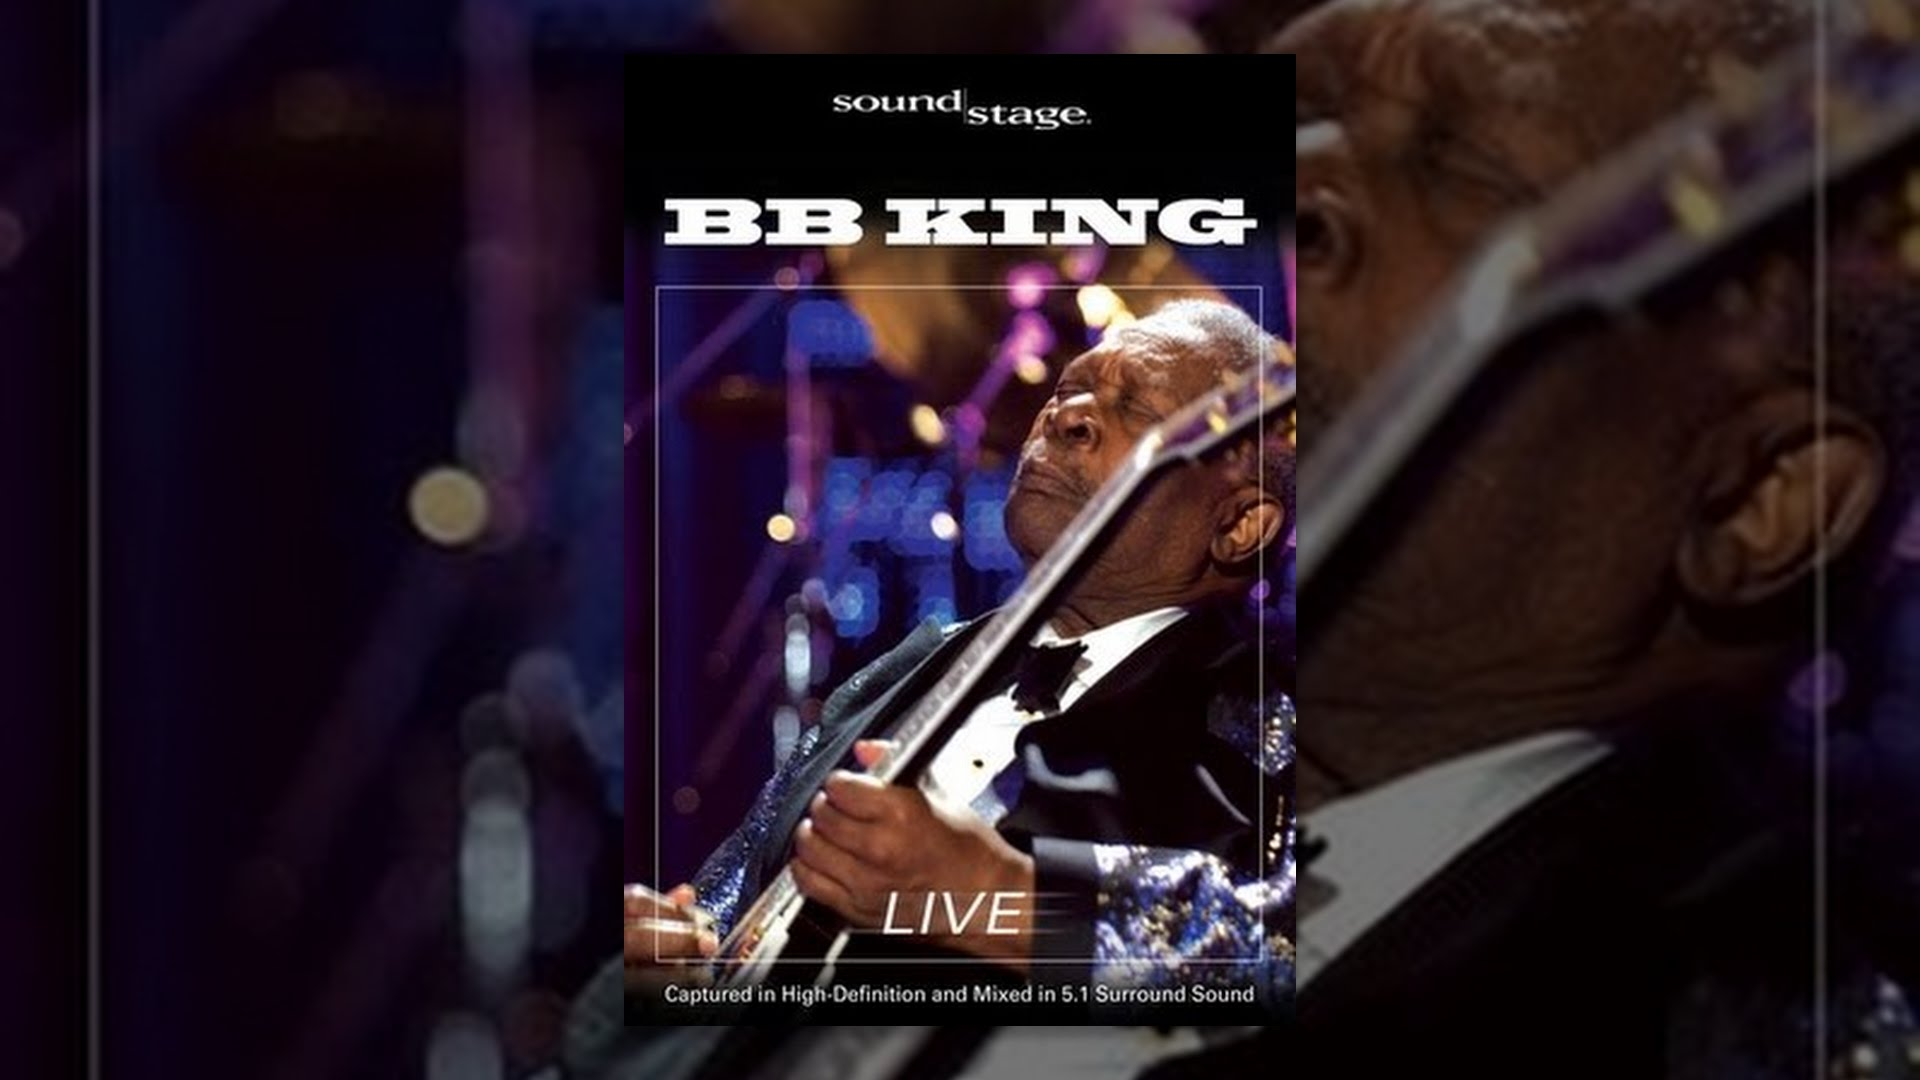 B. B. King - Live at Soundstage